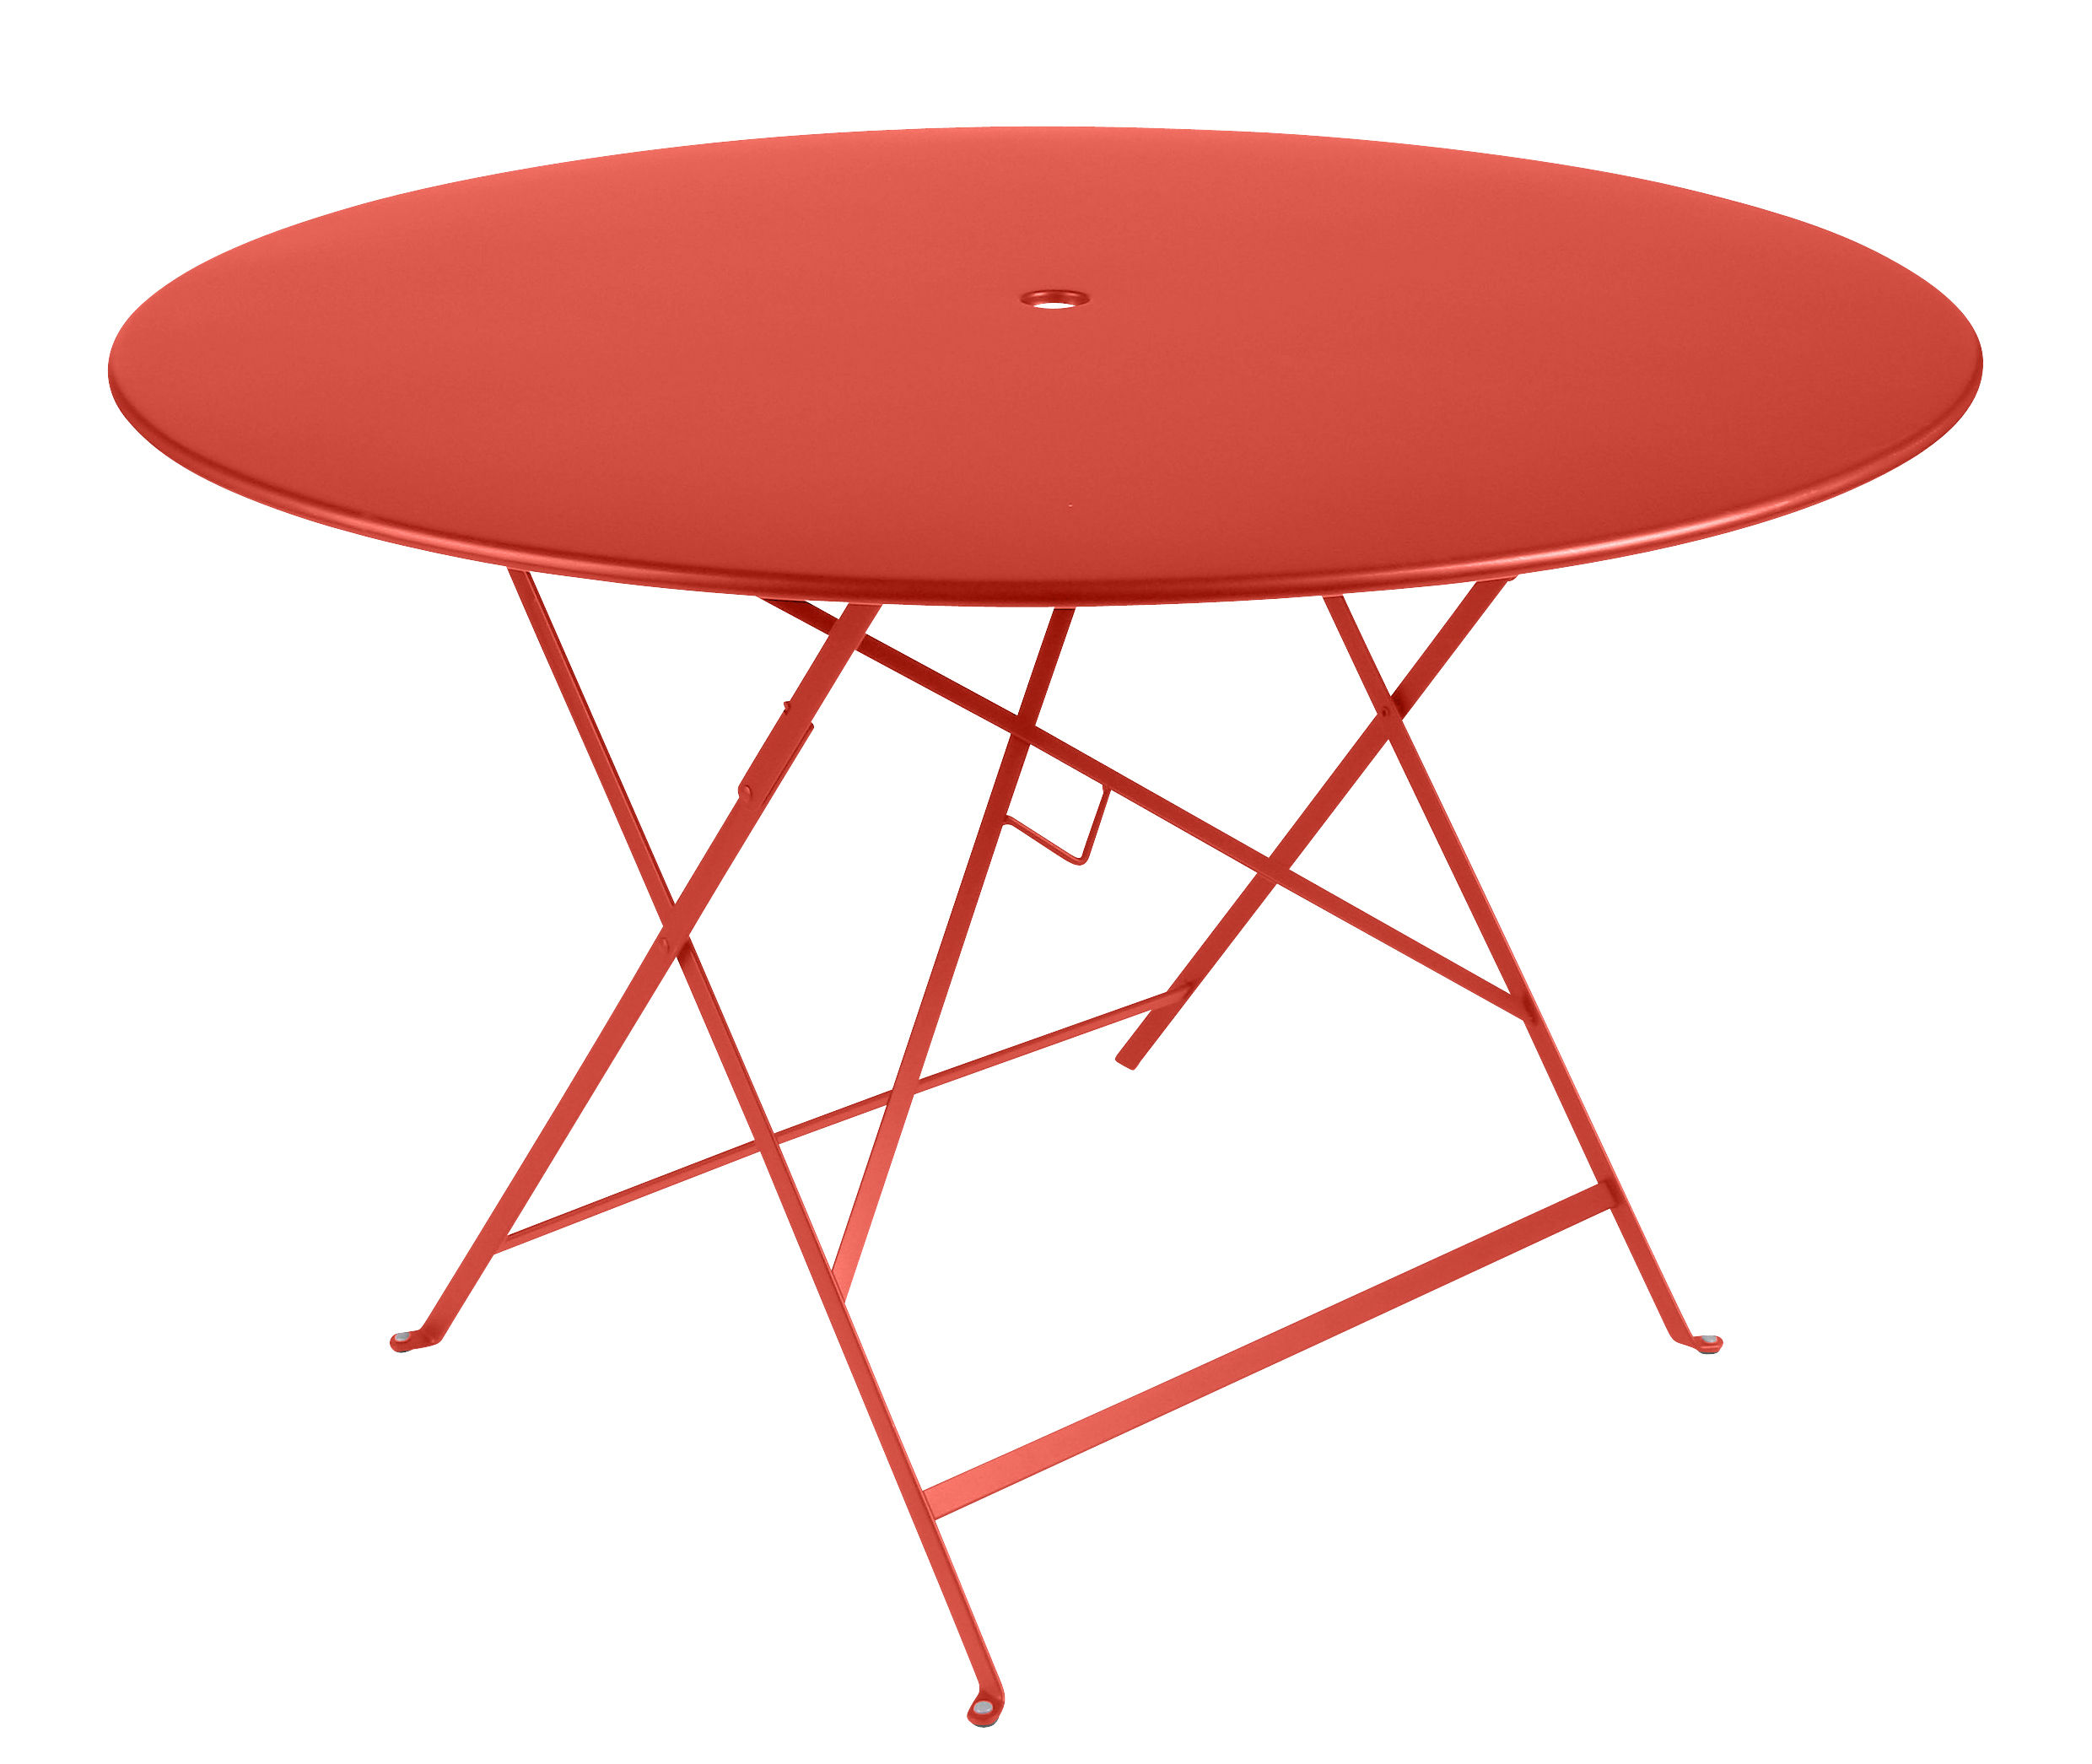 Outdoor - Garden Tables - Bistro Foldable table - Ø 117 cm - 6/8 people - Umbrella Hole by Fermob - Nasturtium - Painted steel